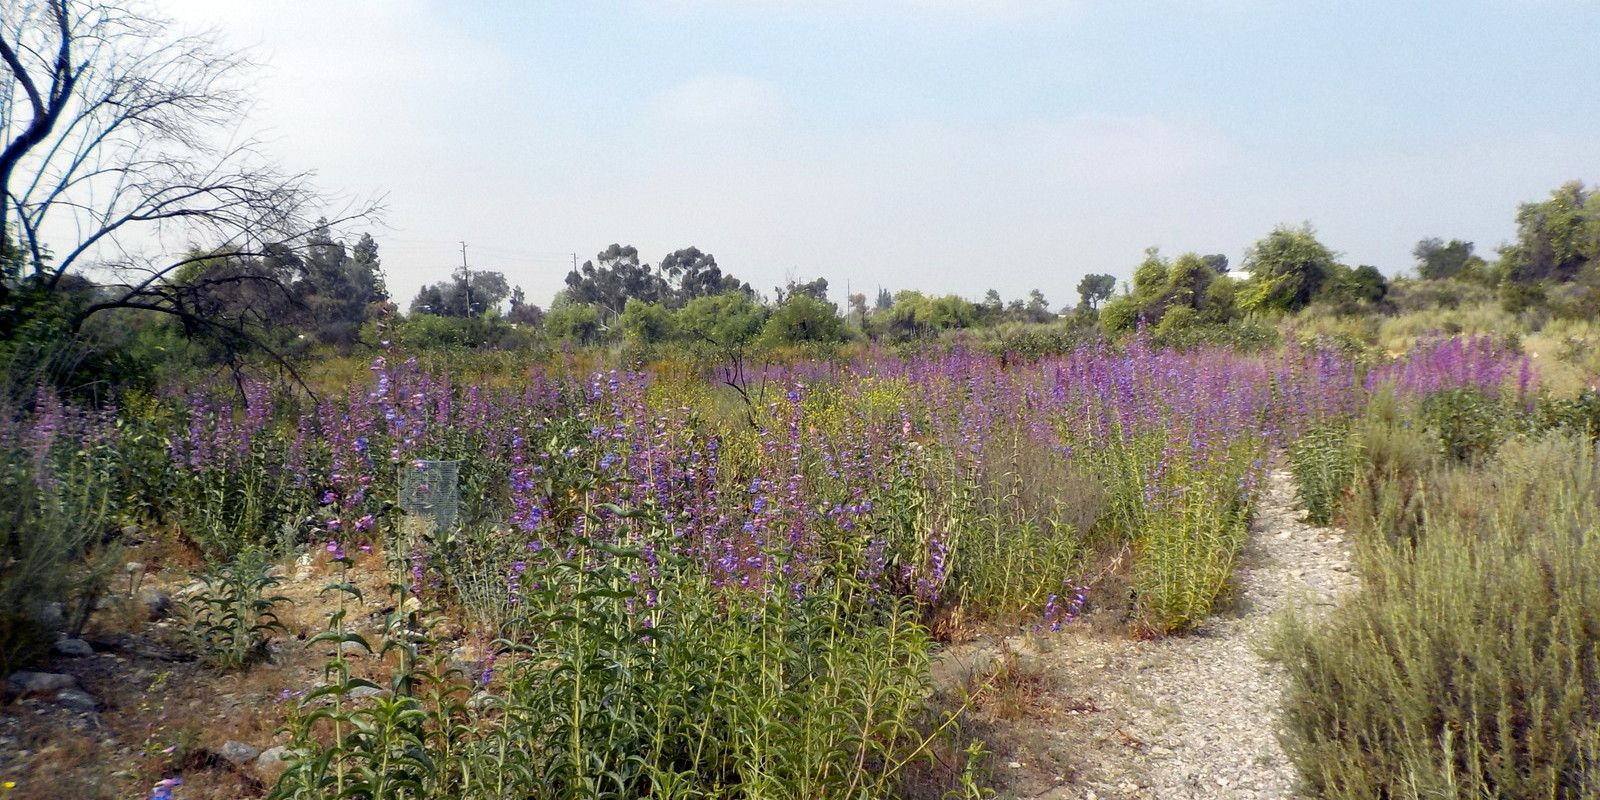 California Is A Big State, With Ecosystems Ranging From Sand Dunes To  Desert, Forest, Shrubland, And Swamp. The Most Water Wise Plants For Any  Garden Are ...